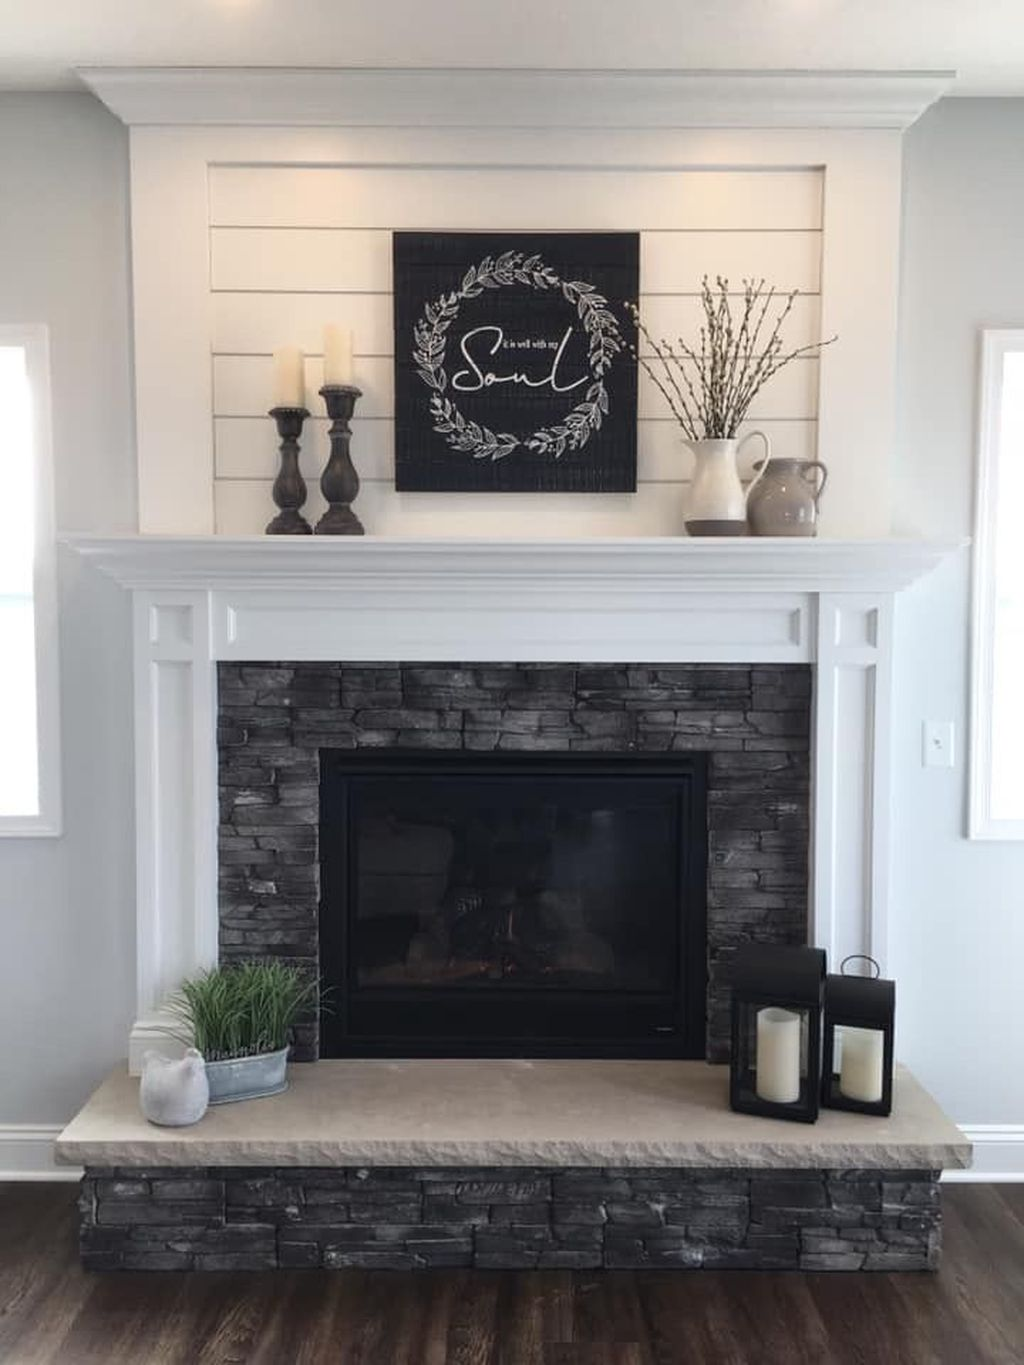 Stunning Fireplace Mantel Decor Ideas You Should Copy Now 17